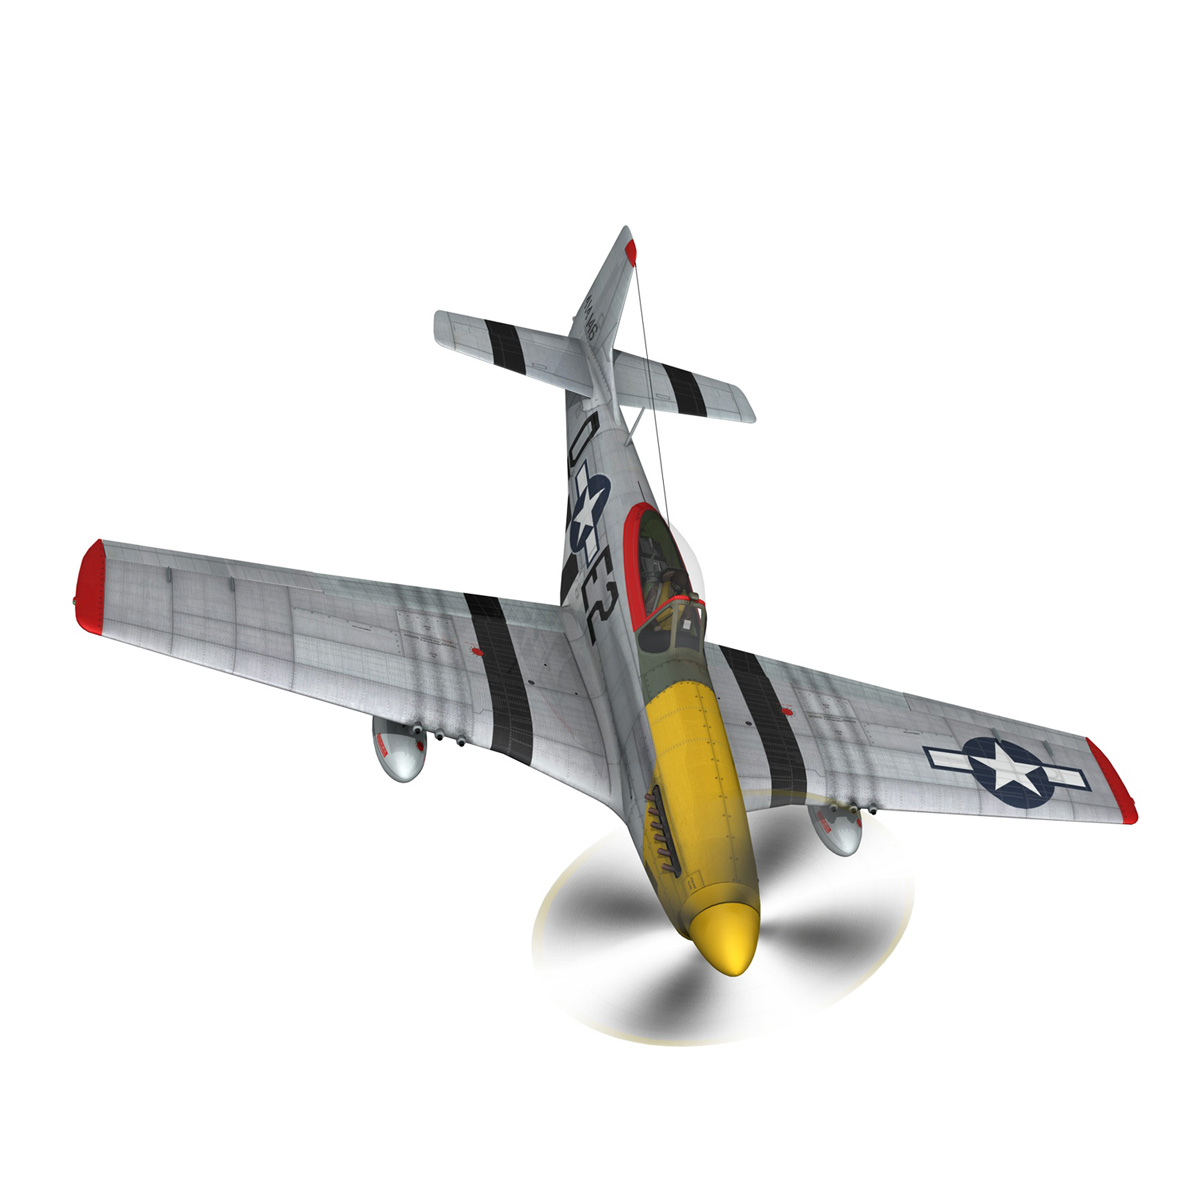 north american p-51d – mustang – detroit miss 3d model 3ds fbx c4d lwo obj 267600